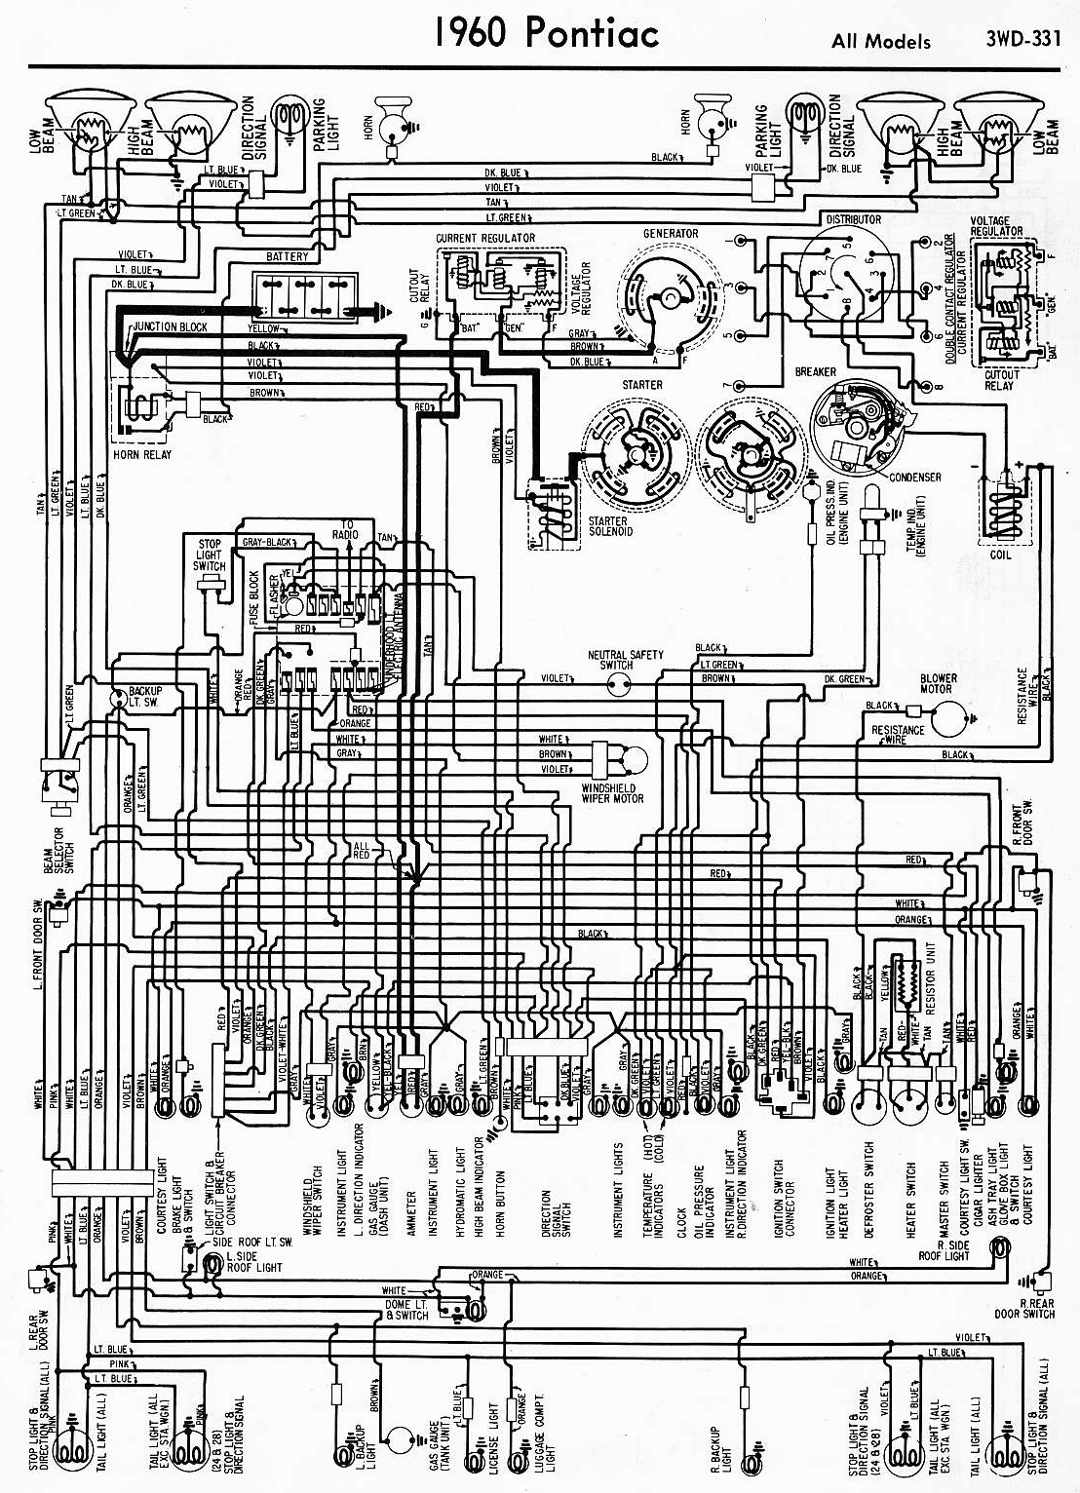 Citroen Relay Wiring Diagram 28 Images Club Car Ignition Switch Free Download Complete Of 1960 Pontiact1502618316 Taotao 50 Scooter